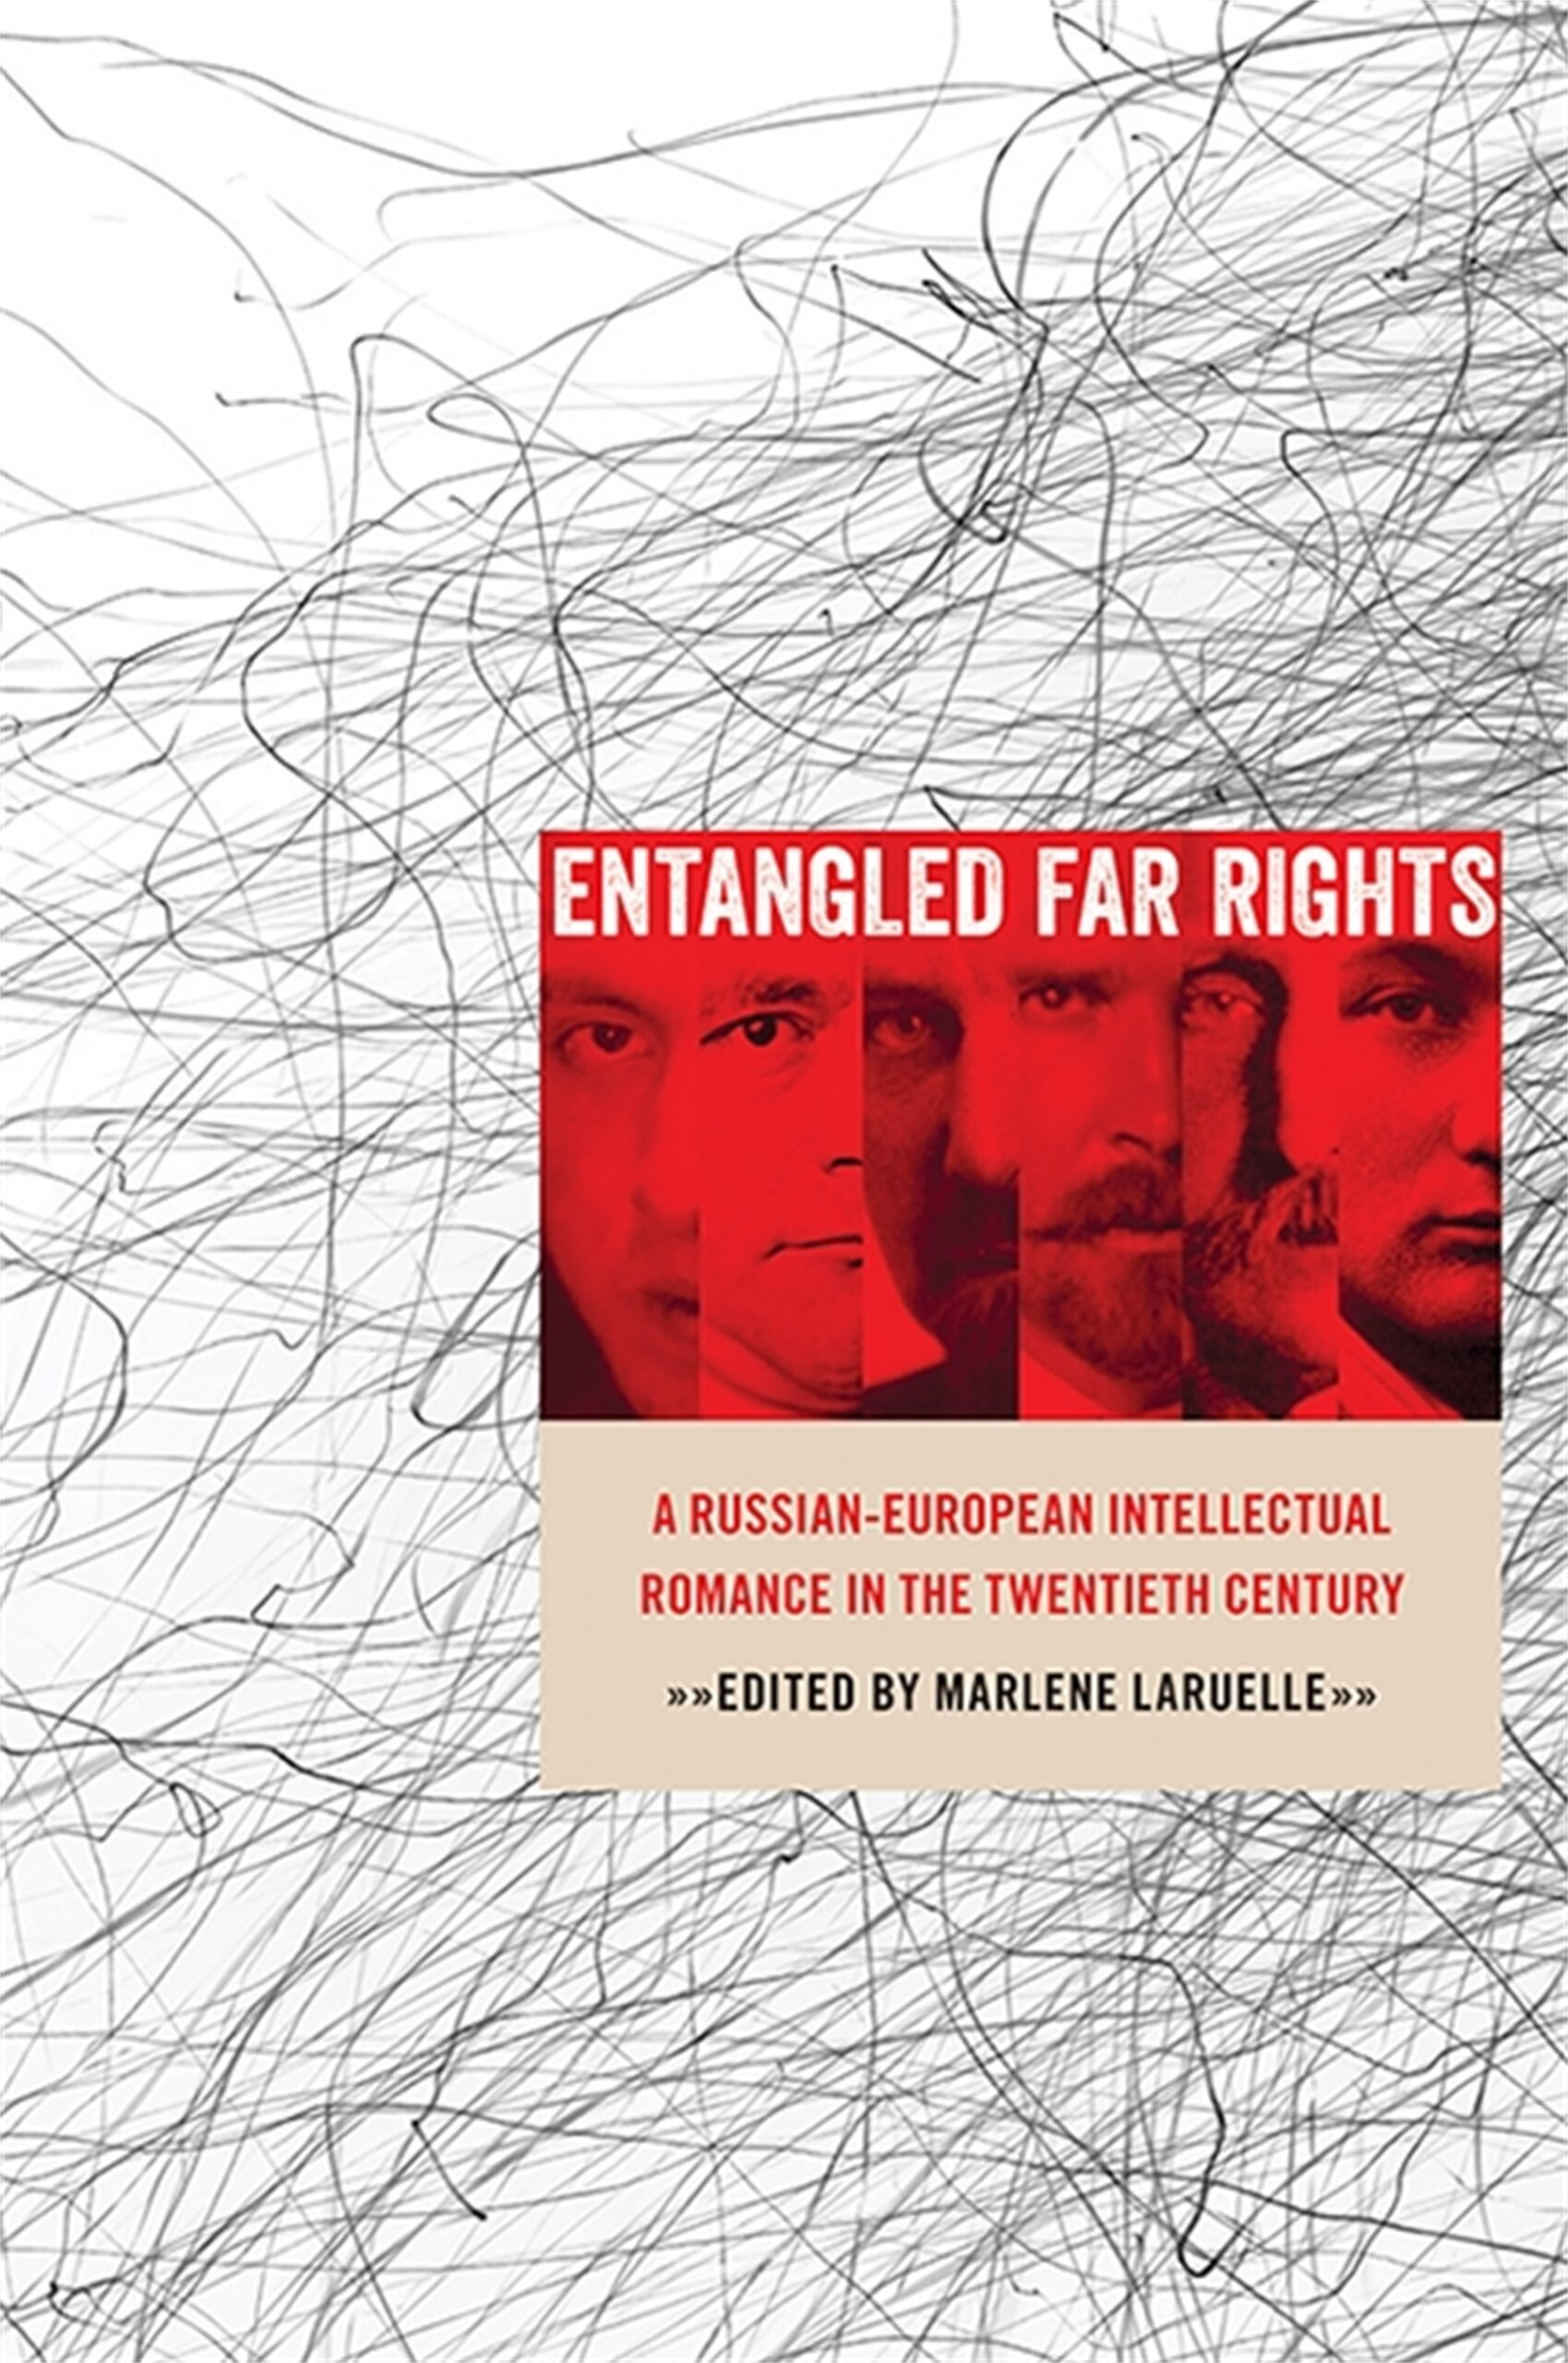 Entangled Far Rights: A Russian-European Intellectual Romance in the 20th Century